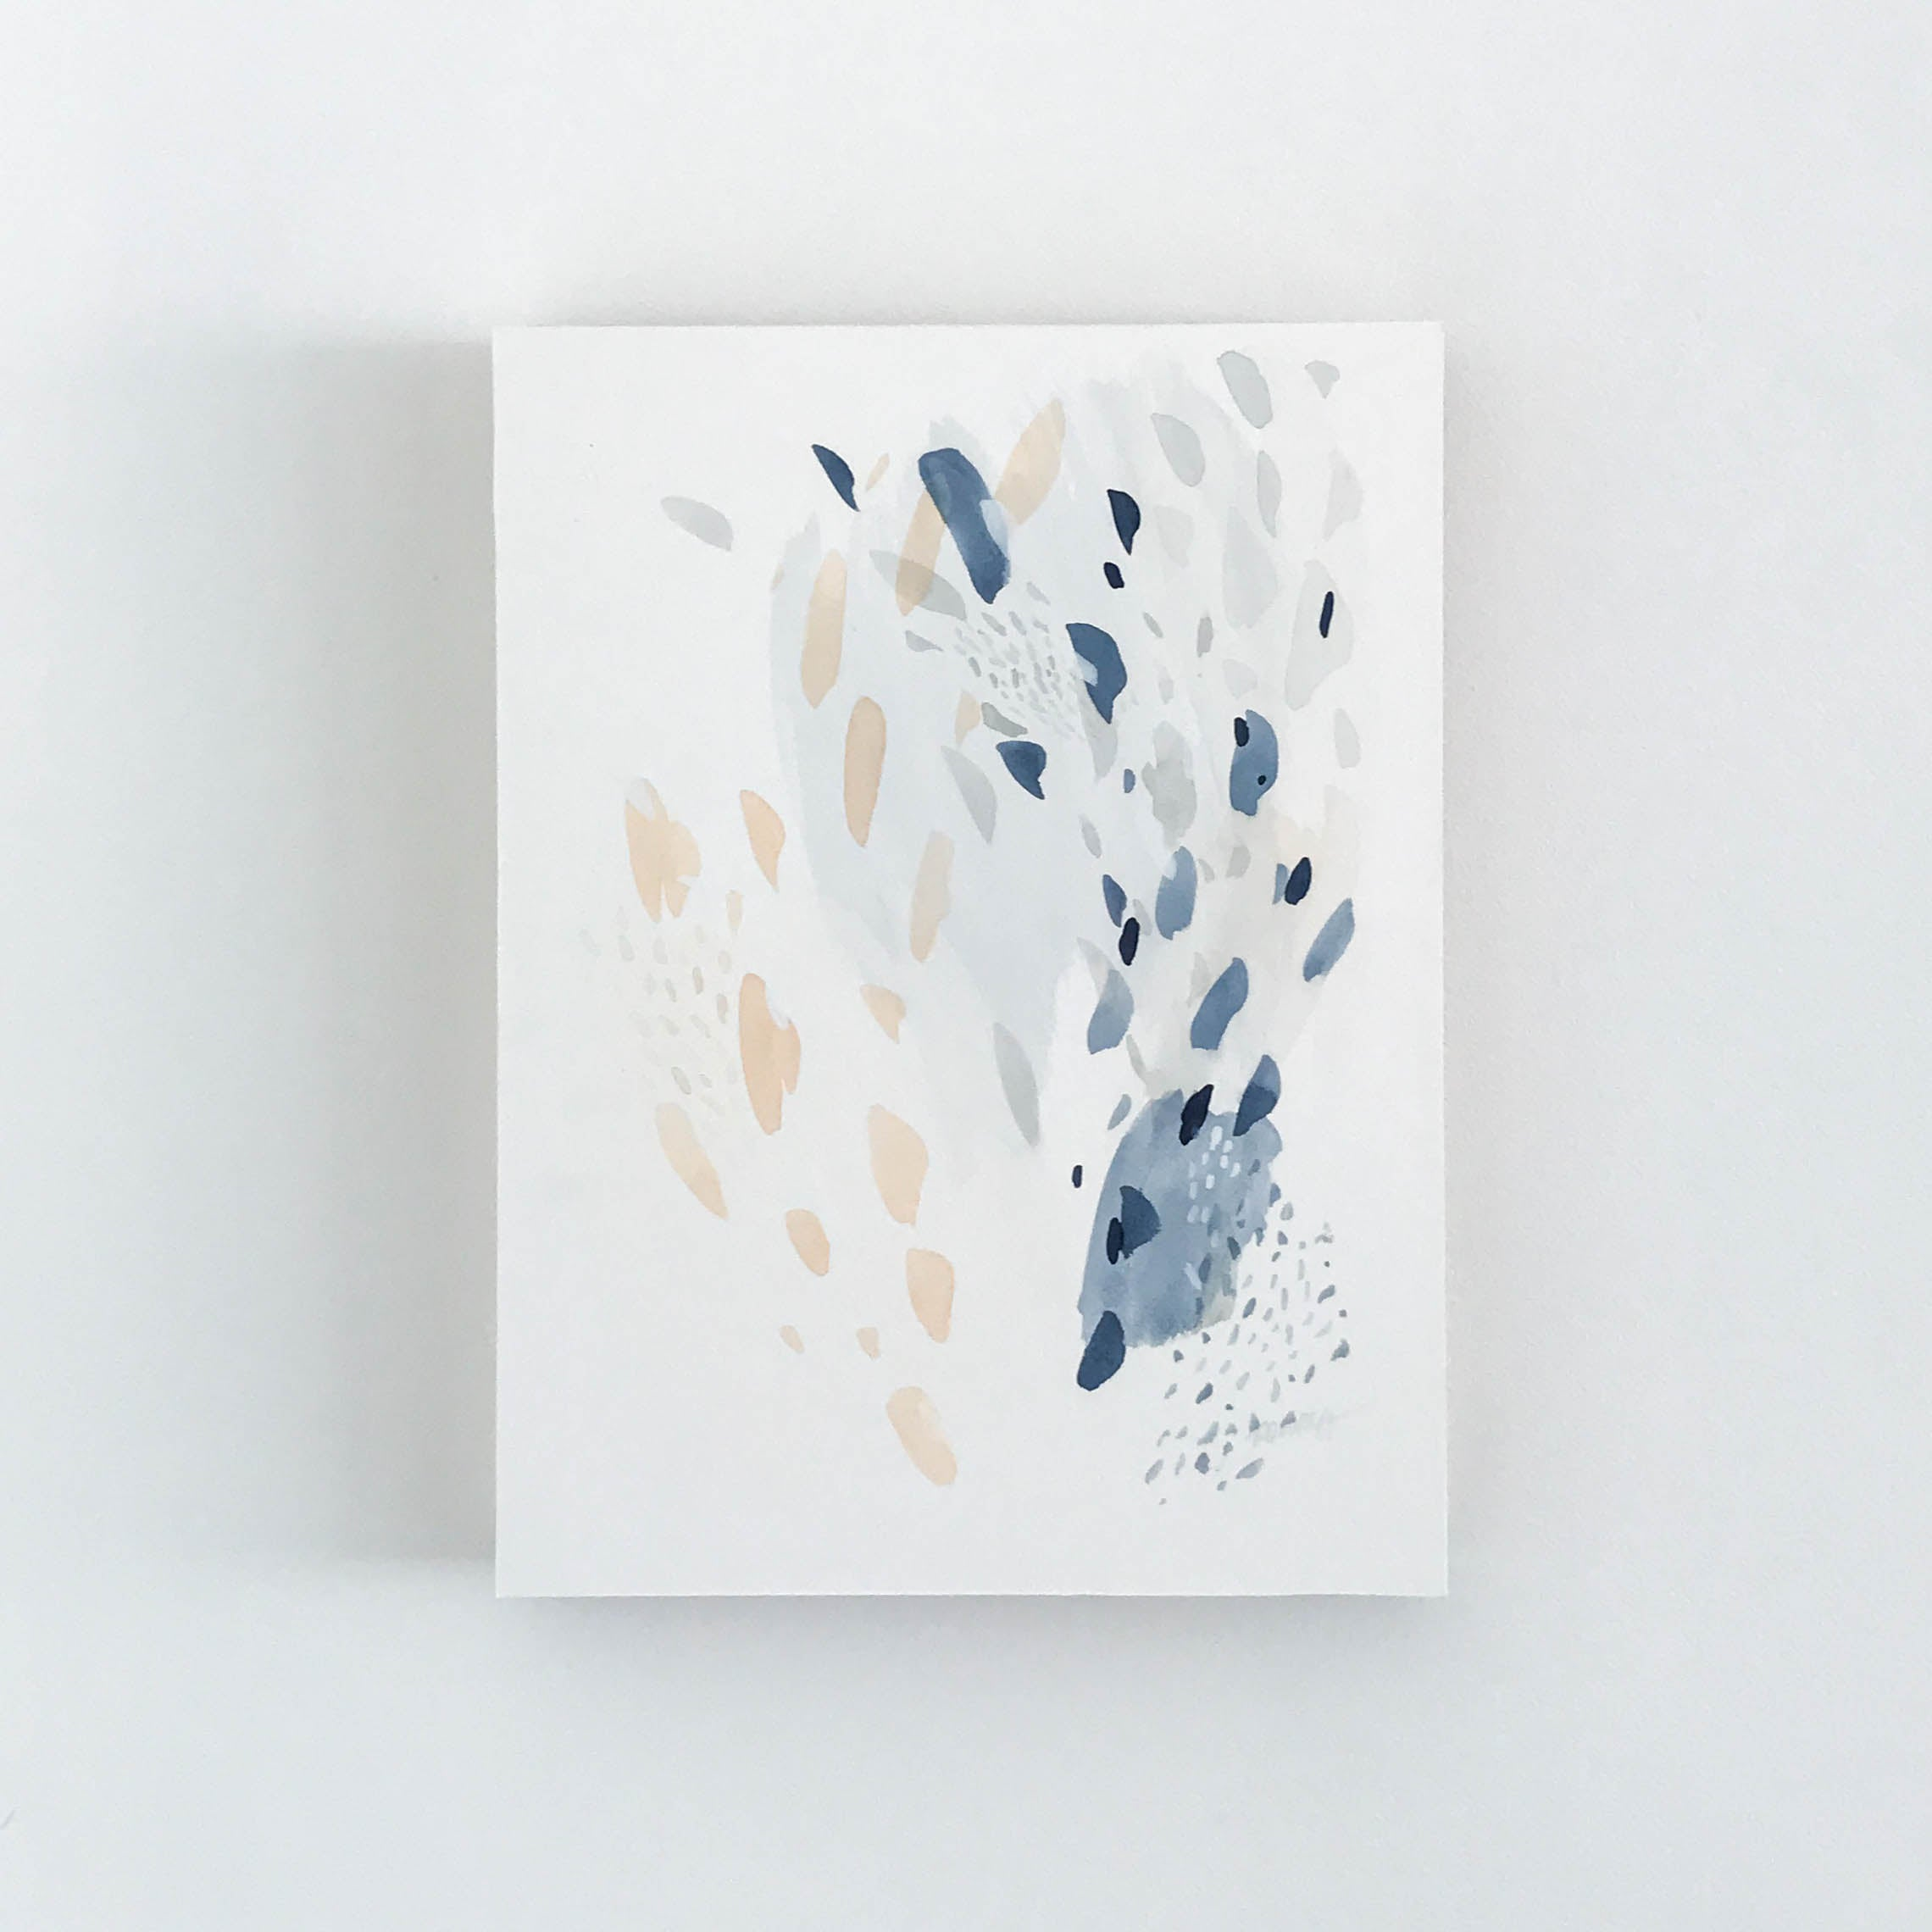 "Original one-of-kind artwork reflecting the movement of water, light and colour over pacific mussel shells. 12"" x 16"" Original Artwork - Watercolour and gouache on natural white watercolour paper mounted on cradled wood panel. Abstract watercolour artwork by artist Kait DeWolff @kaitcreative est coast art, blue abstract art, minimal art #minimalart #watercolour #abstractpainting"